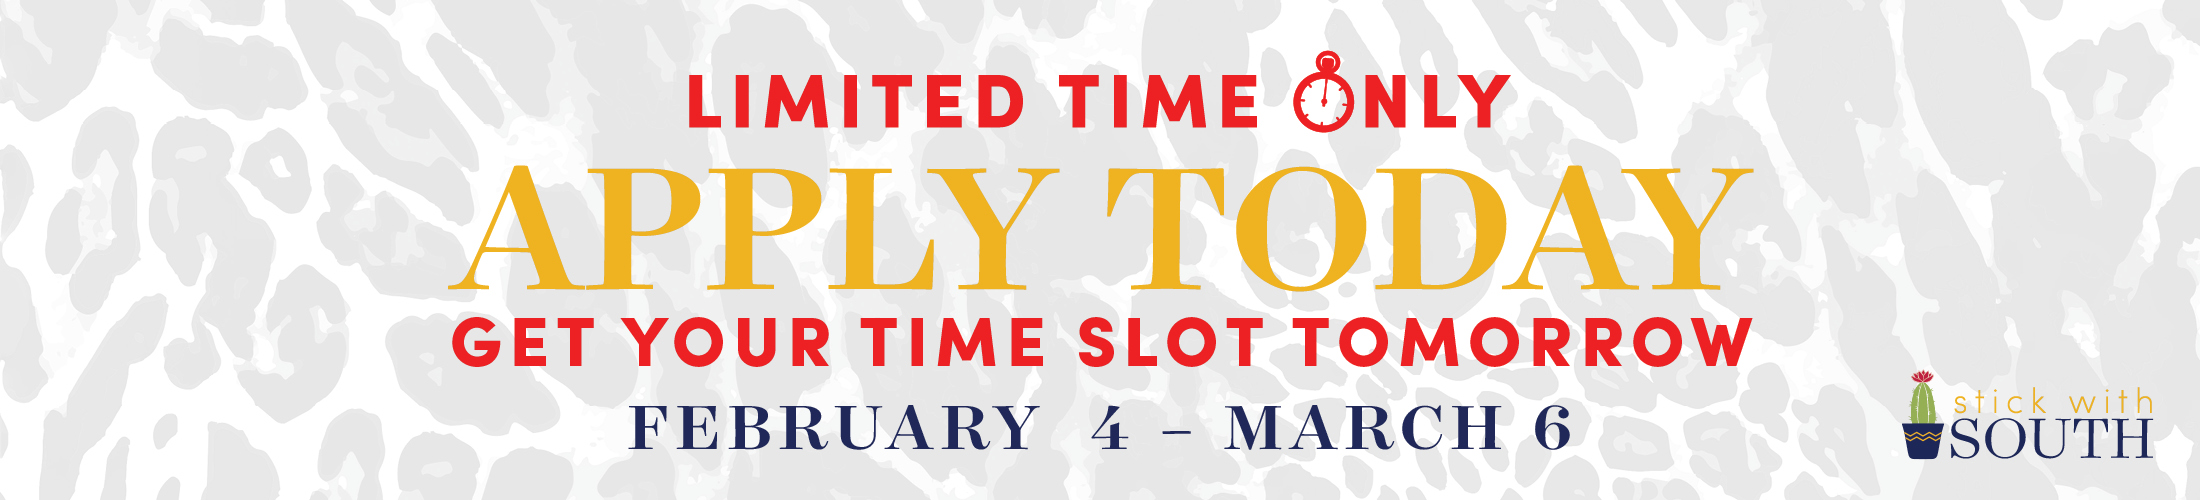 Limited Time Only, Apply Today, Get Your Time Slot Tomorrow February 4- March 6